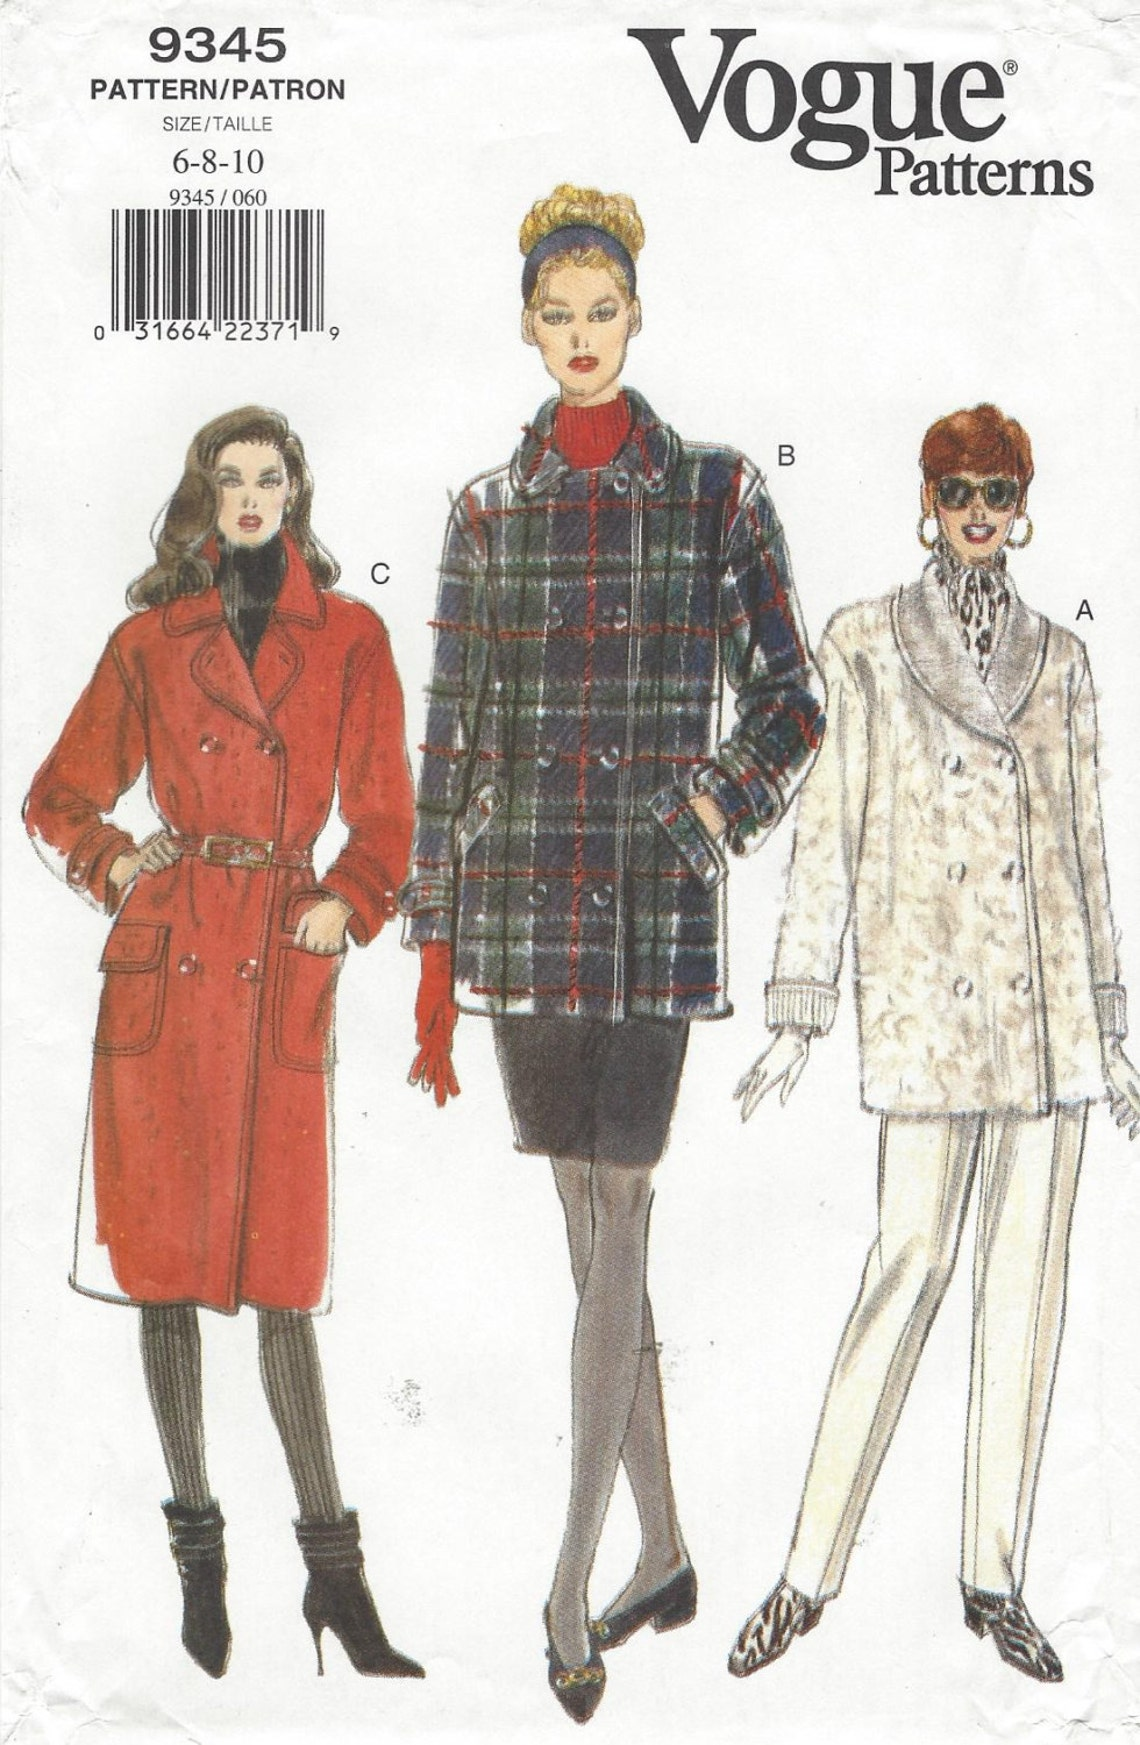 1990s Misses' / Misses' Petite coat pattern Vogue 9345